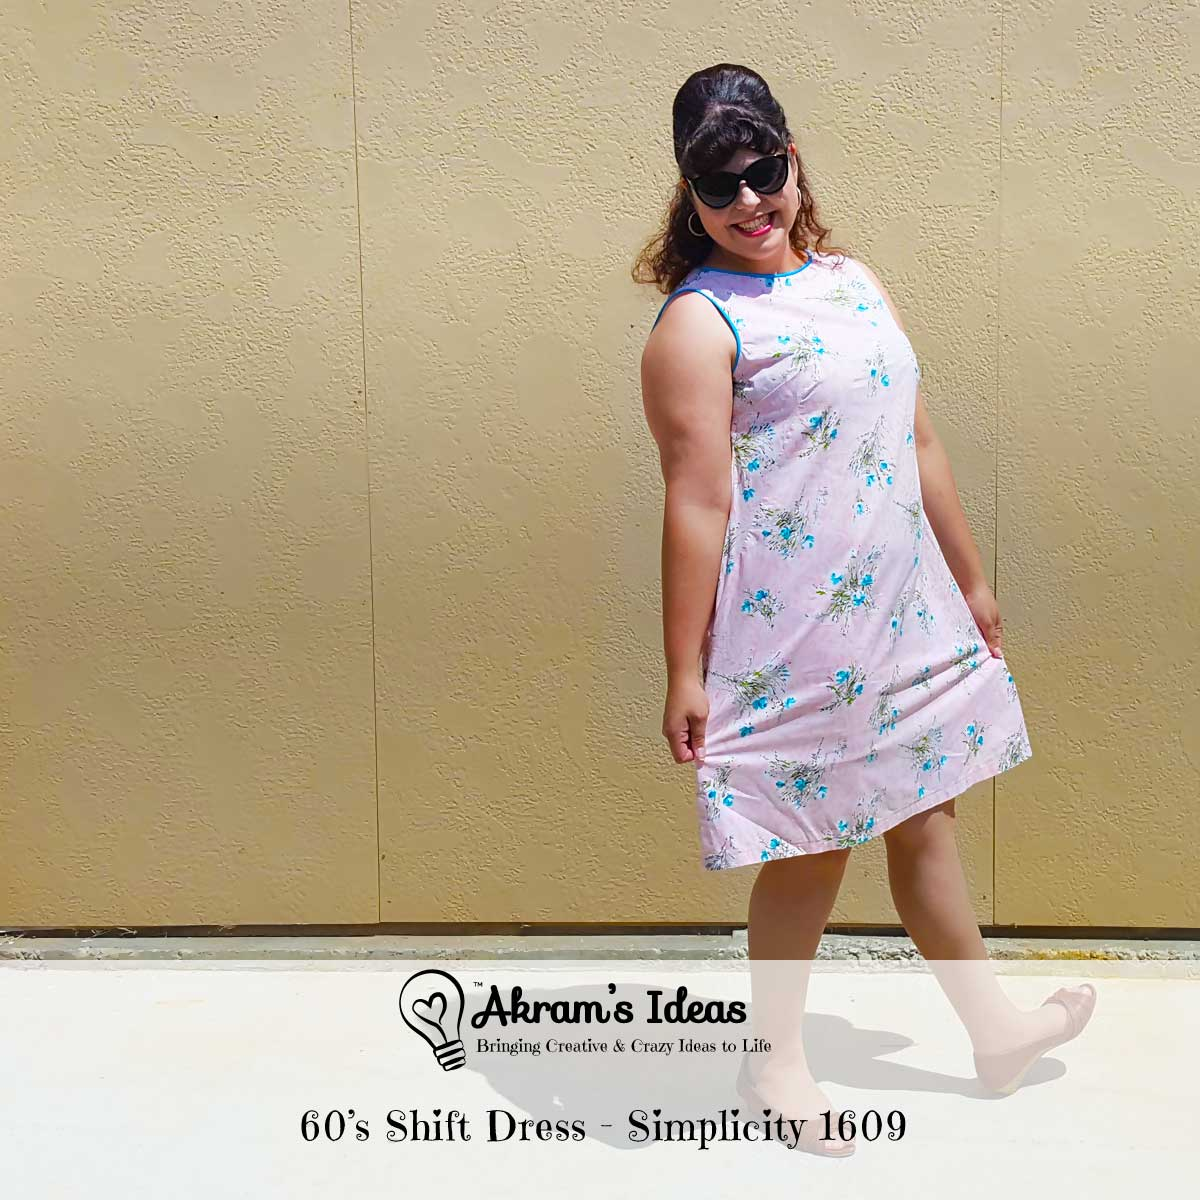 Quick review of my 60's shift dress made with a vintage floral fabric and vintage reproduction simplicity 1609 pattern.